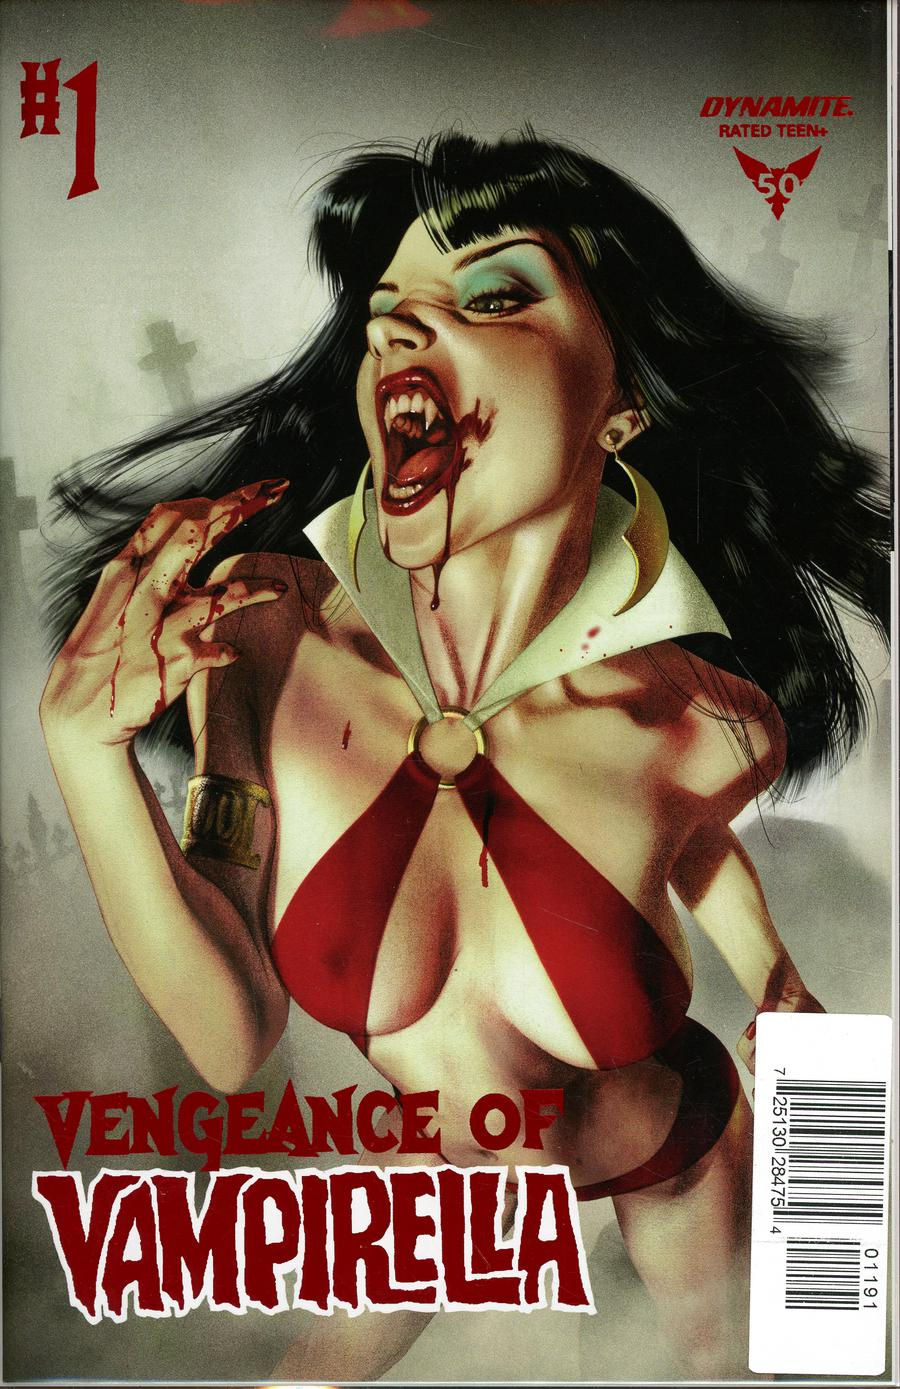 Vengeance Of Vampirella Vol 2 #1 Cover V Limited Edition Joshua Middleton High End Red Foil Cover